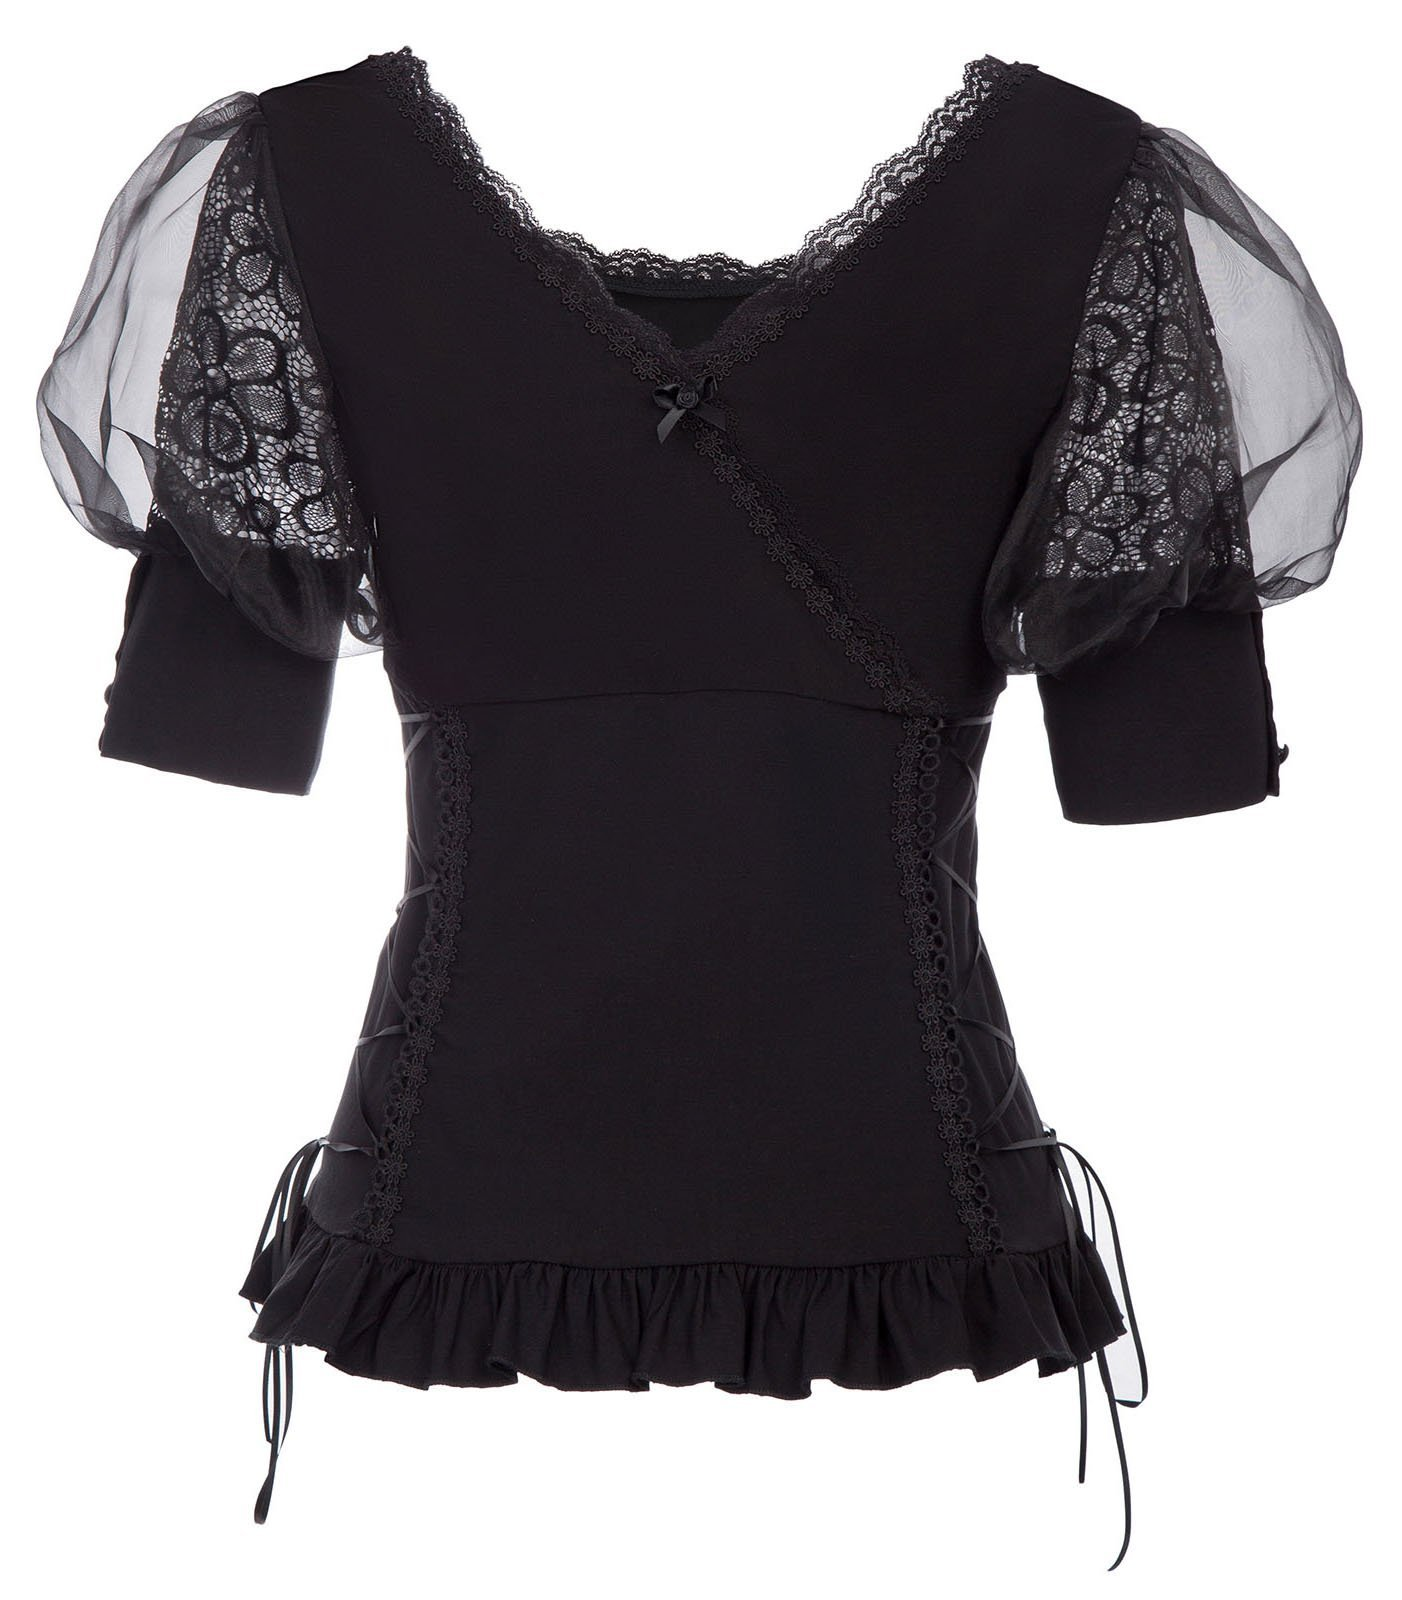 Belle Poque Women Victorian Puff Sleeve Shirt Steampunk Gothic Lace T Shirt Tops 4